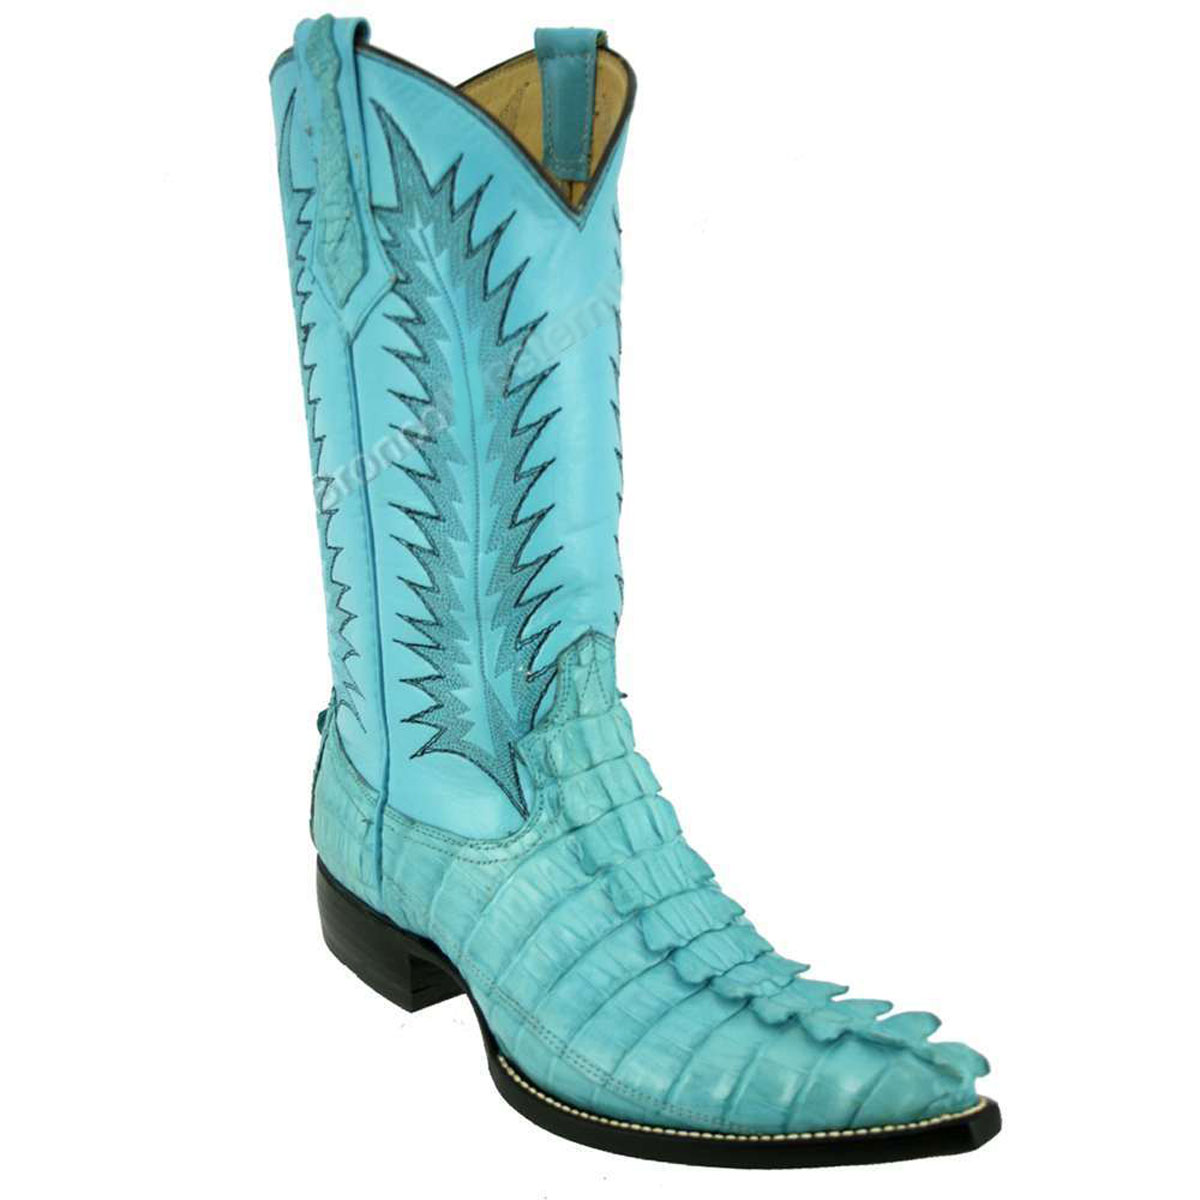 Bronco Men's Turquoise Blue Nile Crocodile Tail Pointed Toe